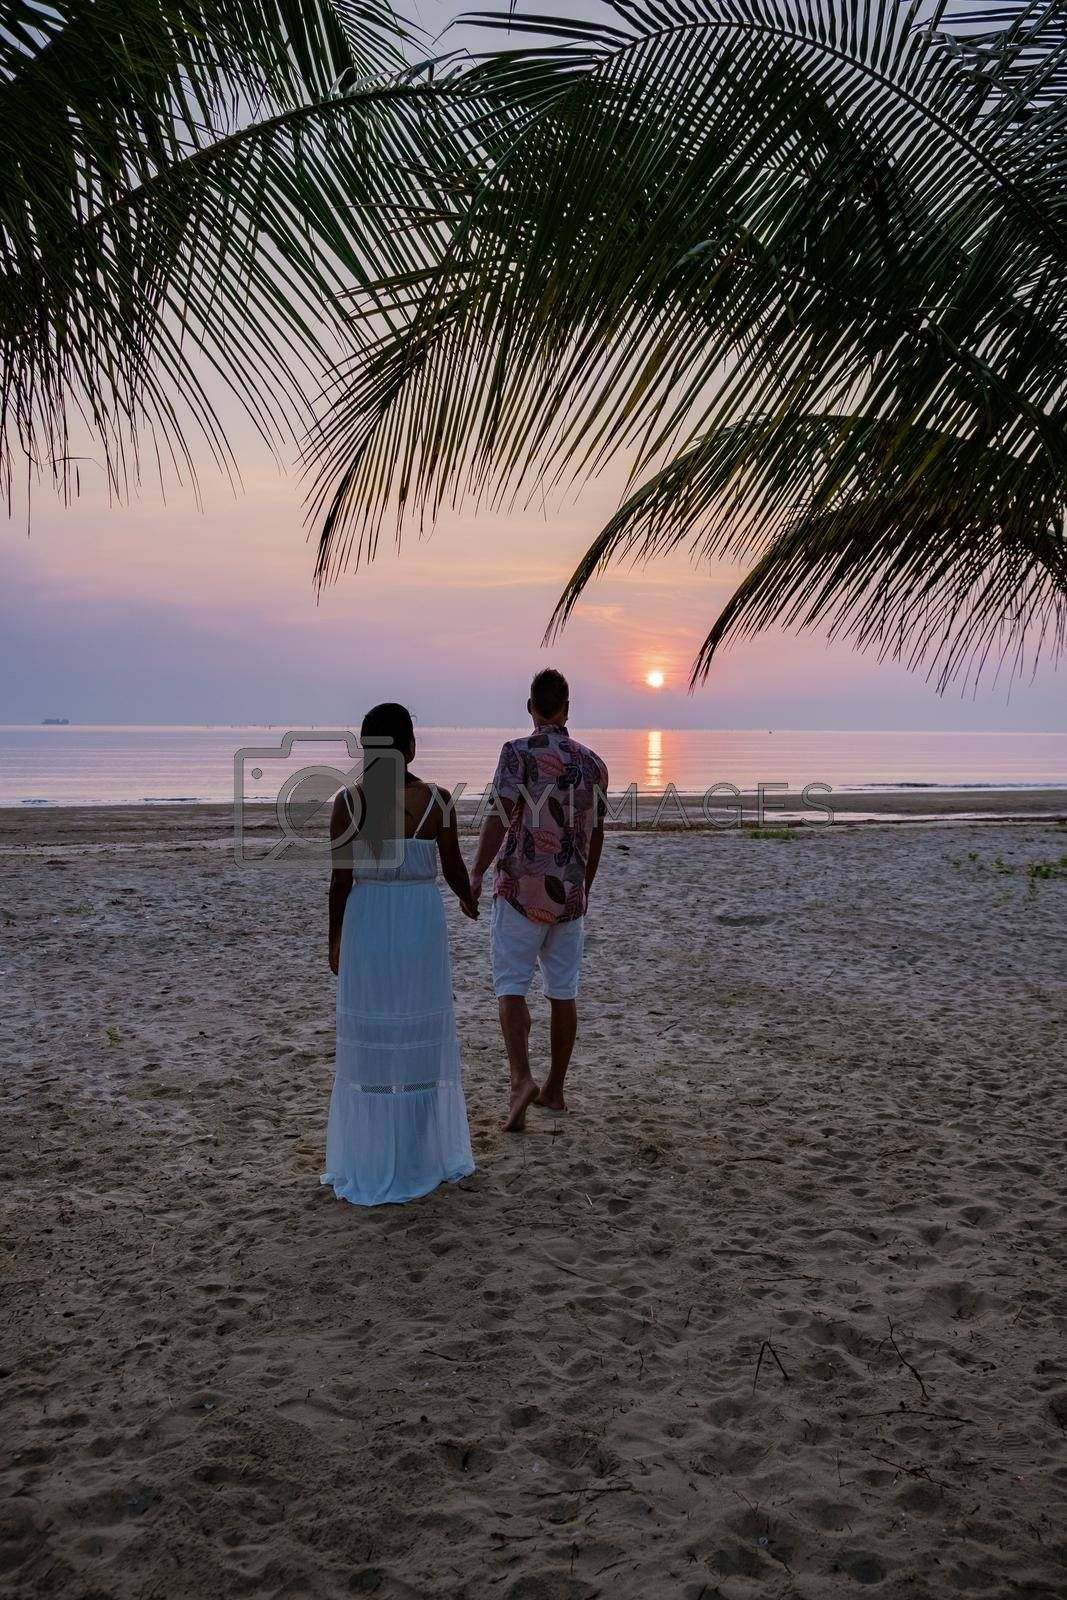 sunrise on the beach with palm trees, Chumphon Thailand, couple watching sunset on the beach in Thailand Asia, mean and woman mid age watching sunrise on beach